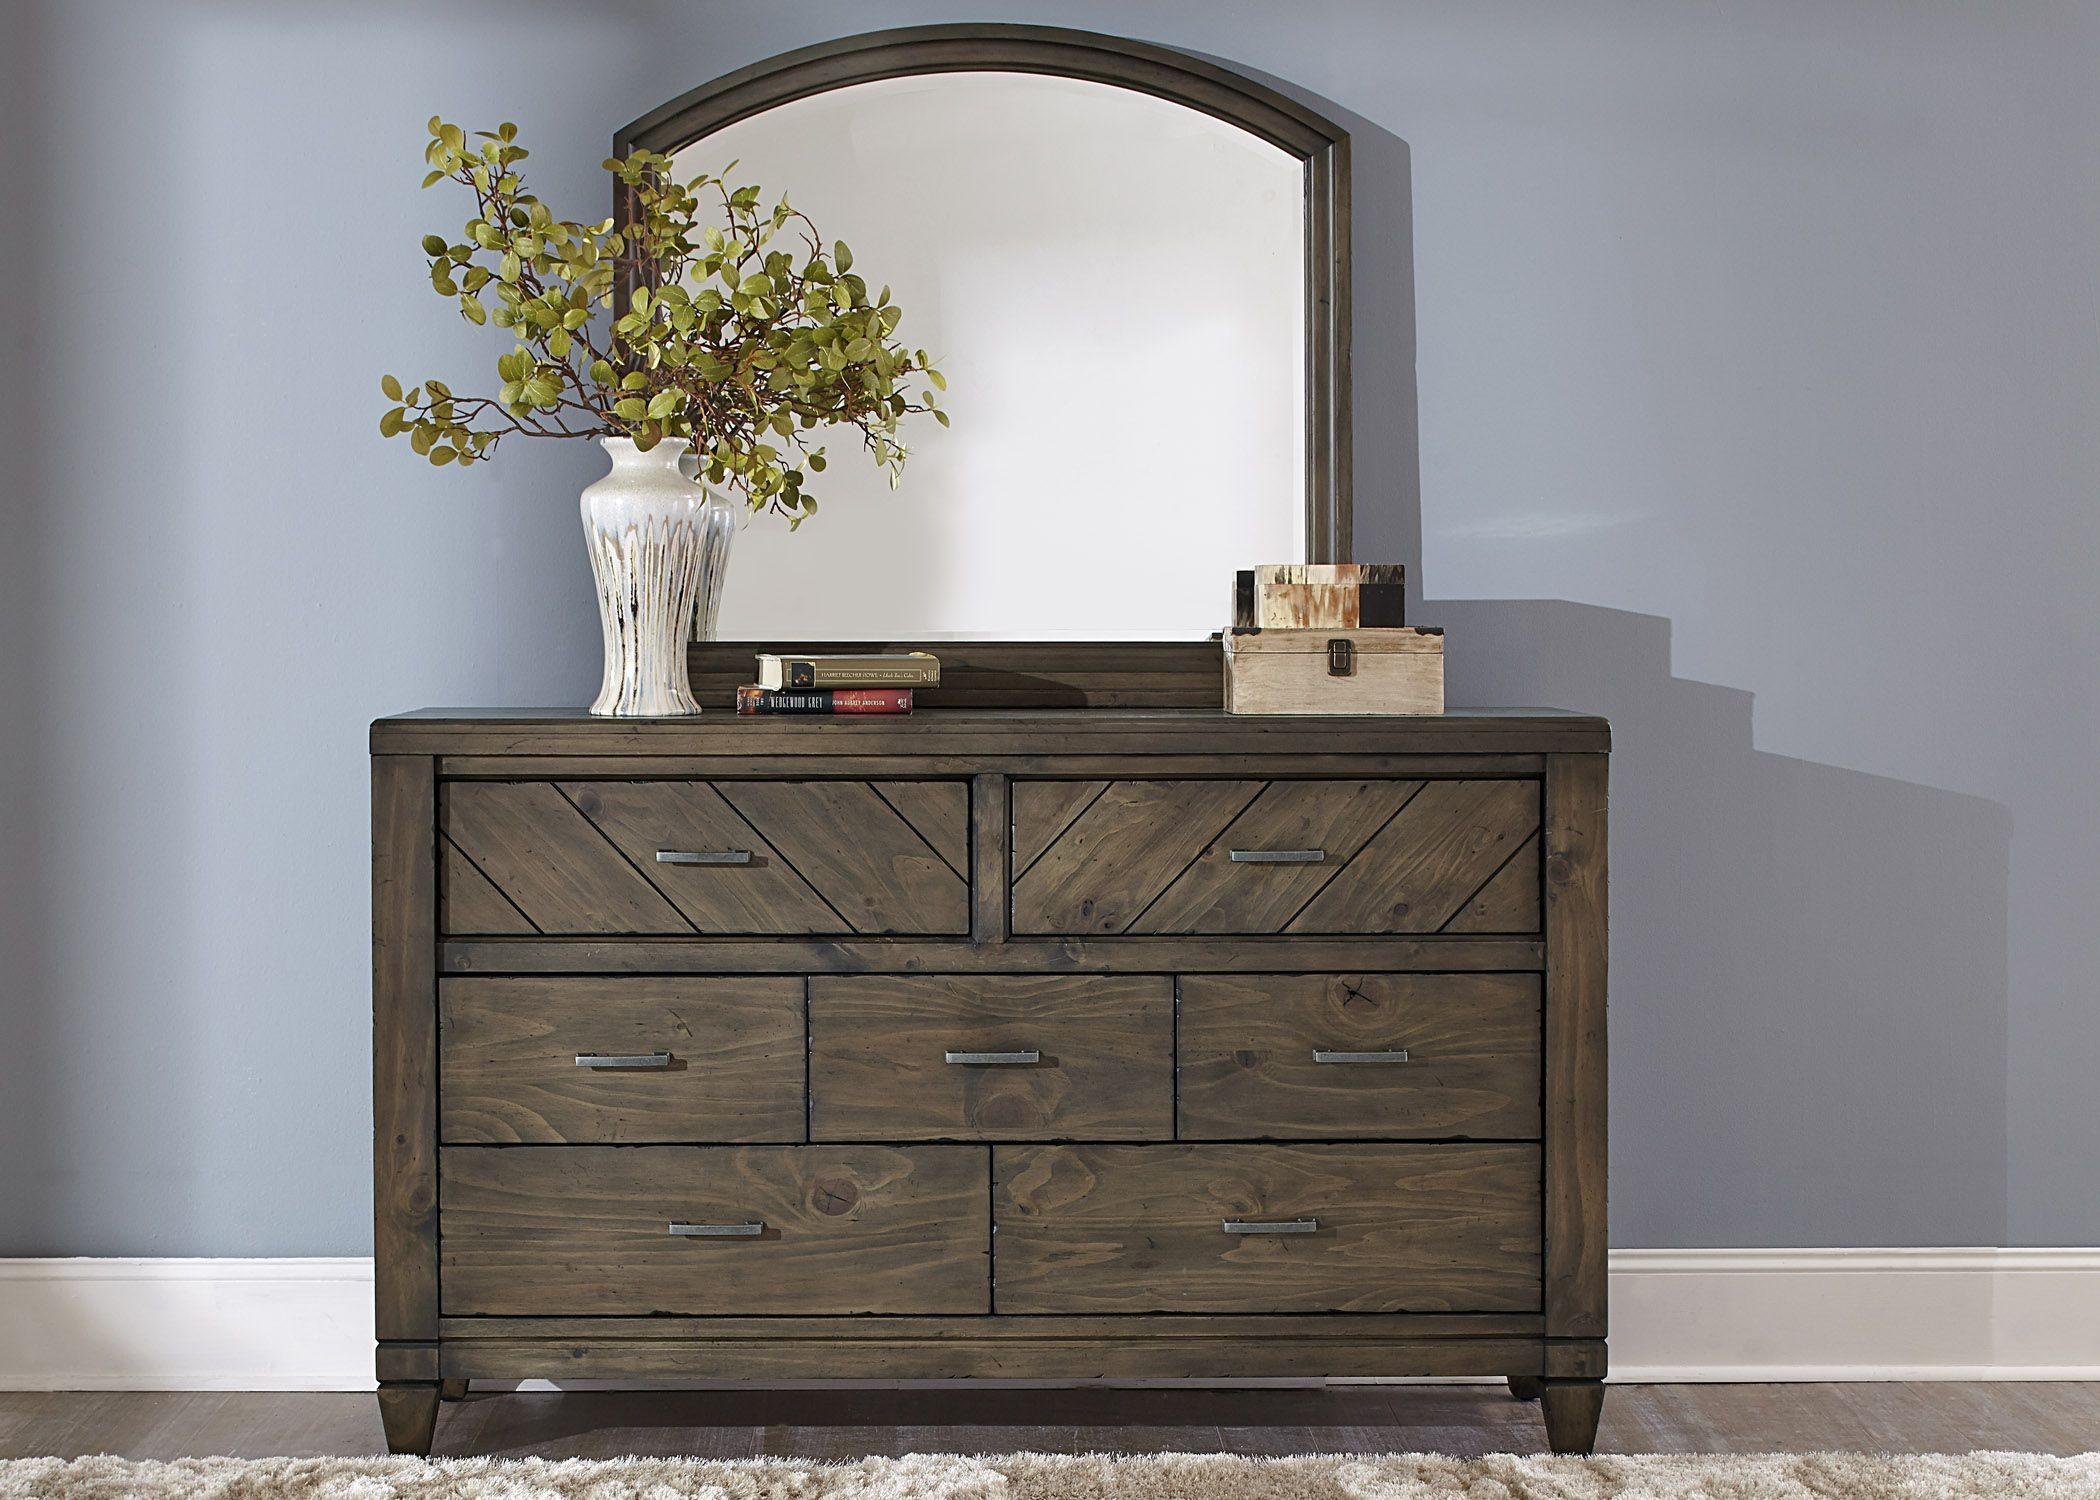 contemporary country furniture. 682243 contemporary country furniture